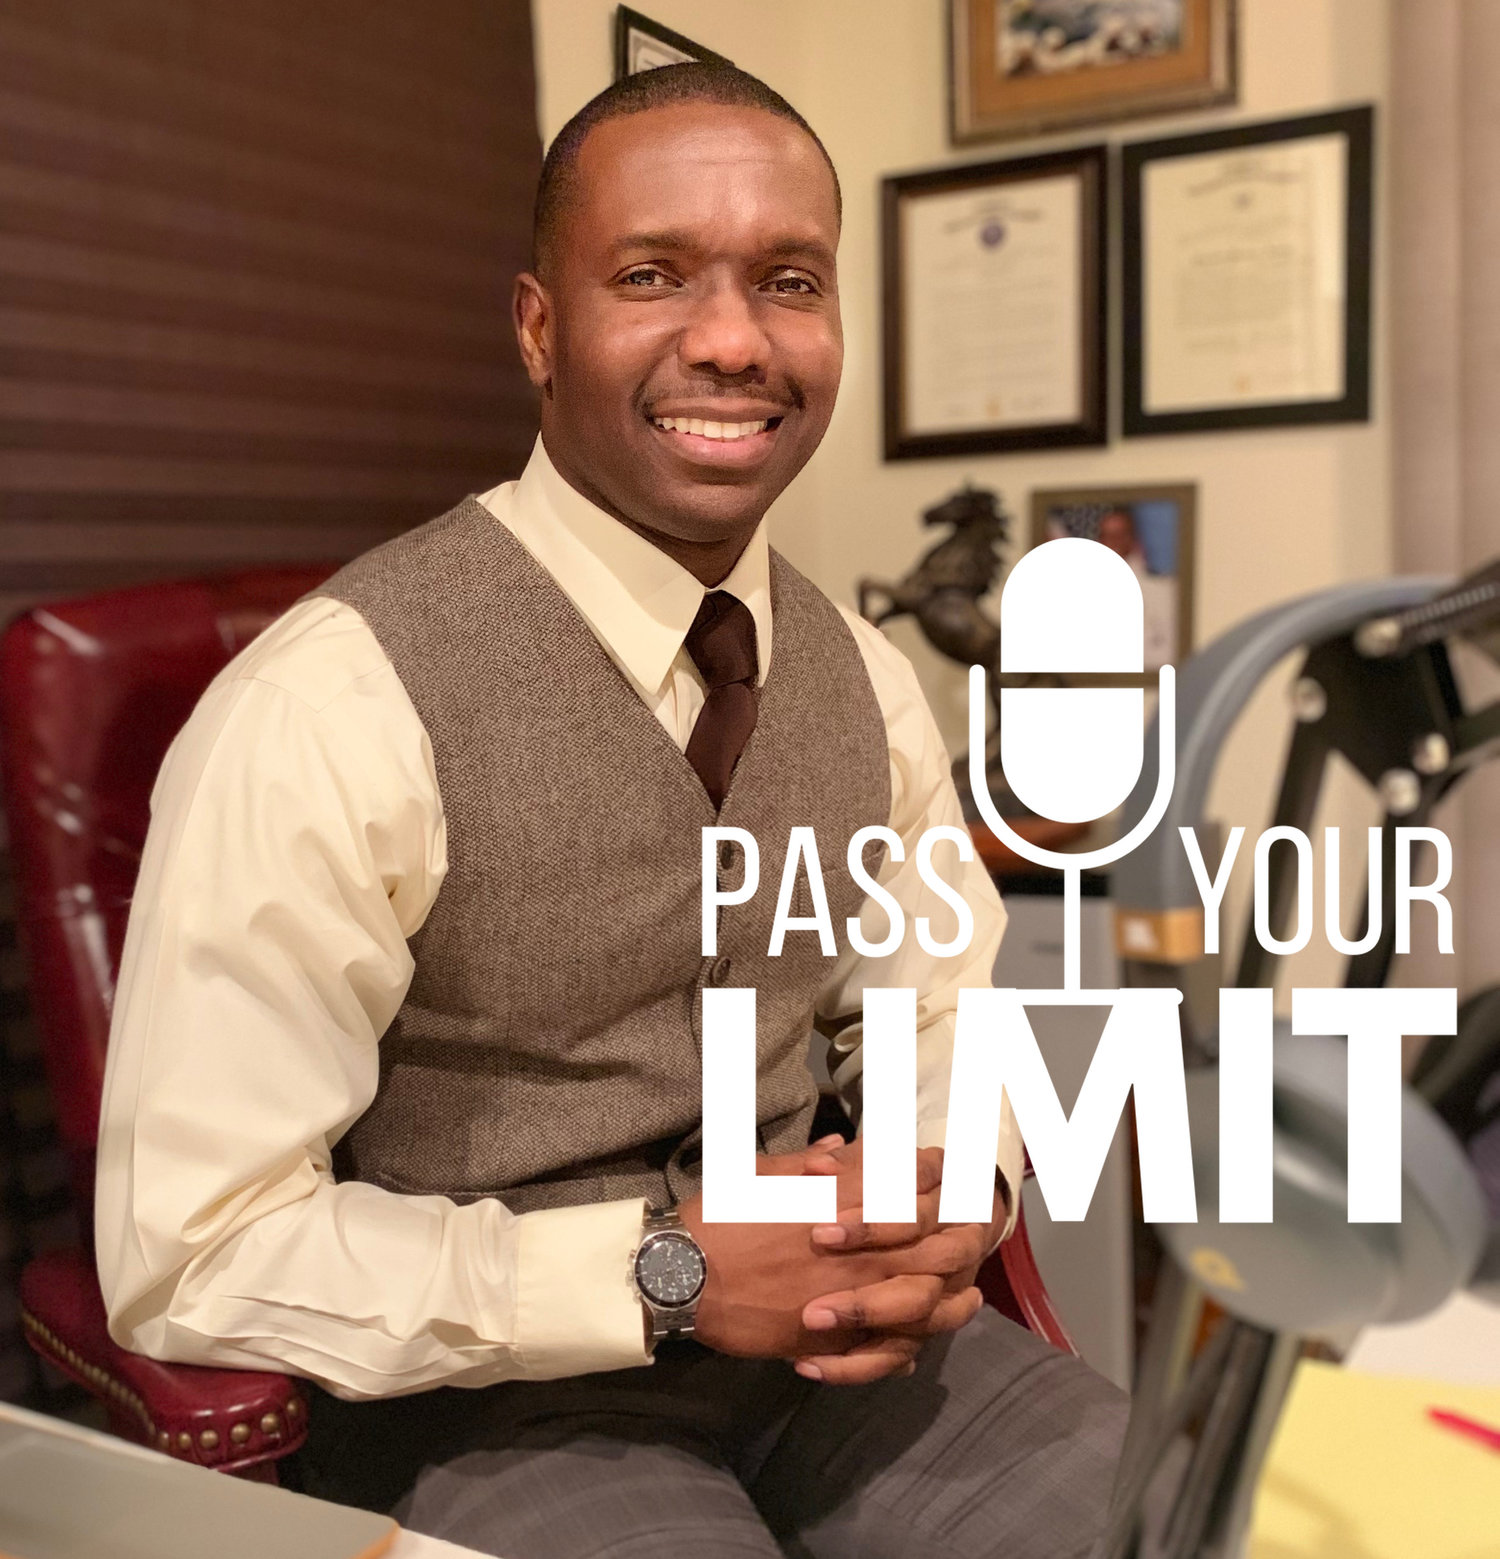 Pass Your Limit LLC